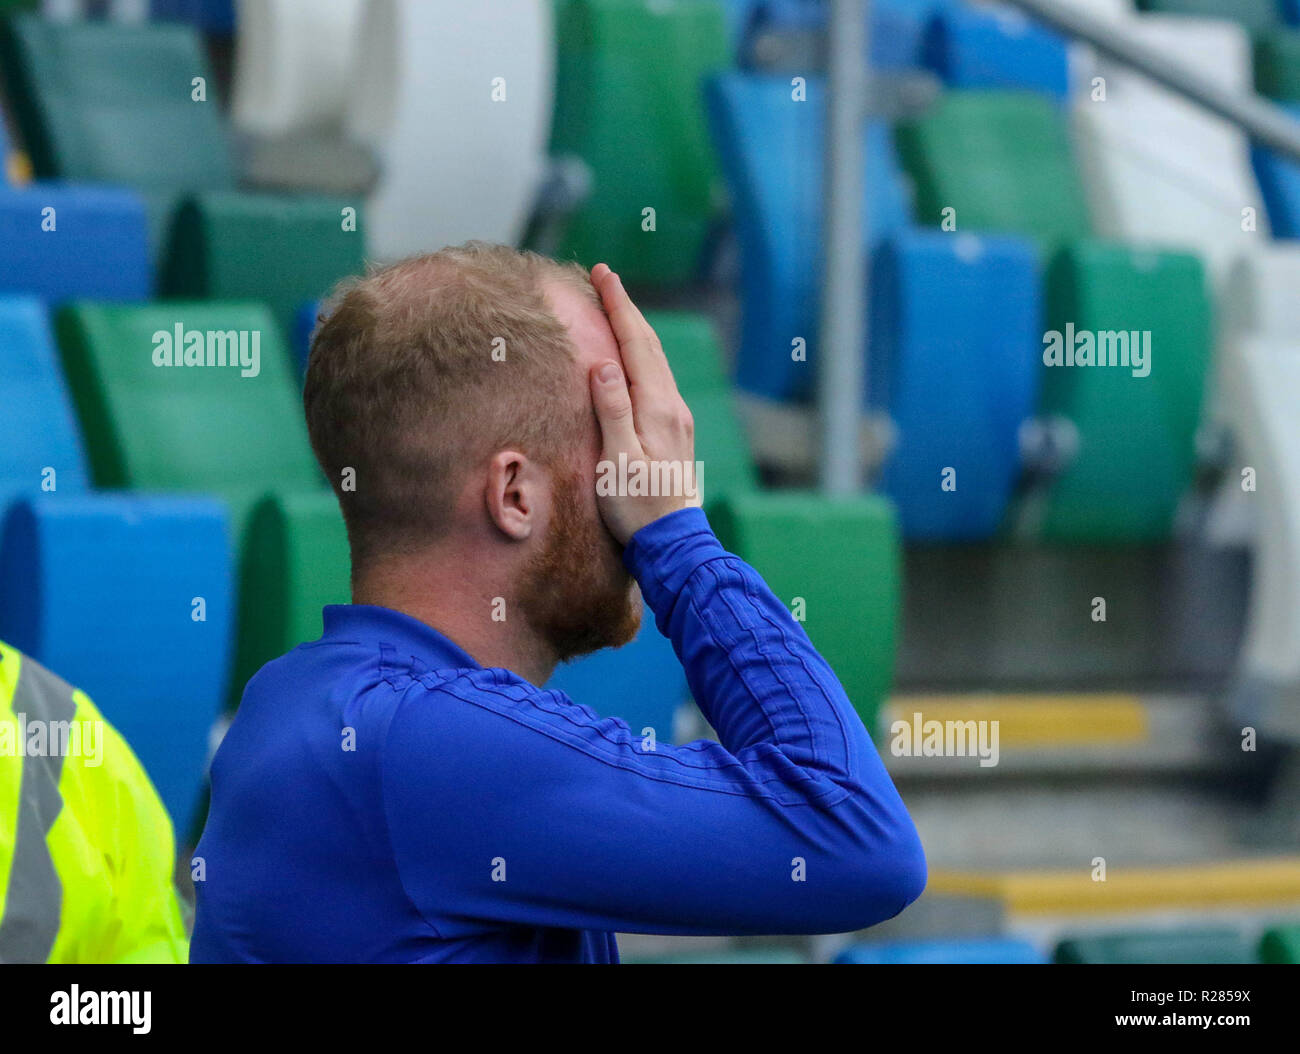 Windsor Park, Belfast, Northern Ireland.17 November 2018. Northern Ireland training in Belfast this morning ahead of their UEFA Nations League game against Austria tomorrow night in the stadium. Liam Boyce jokingly hides his black eye after the injury he sustained midweek against the Republic of Ireland. Credit: David Hunter/Alamy Live News. - Stock Image